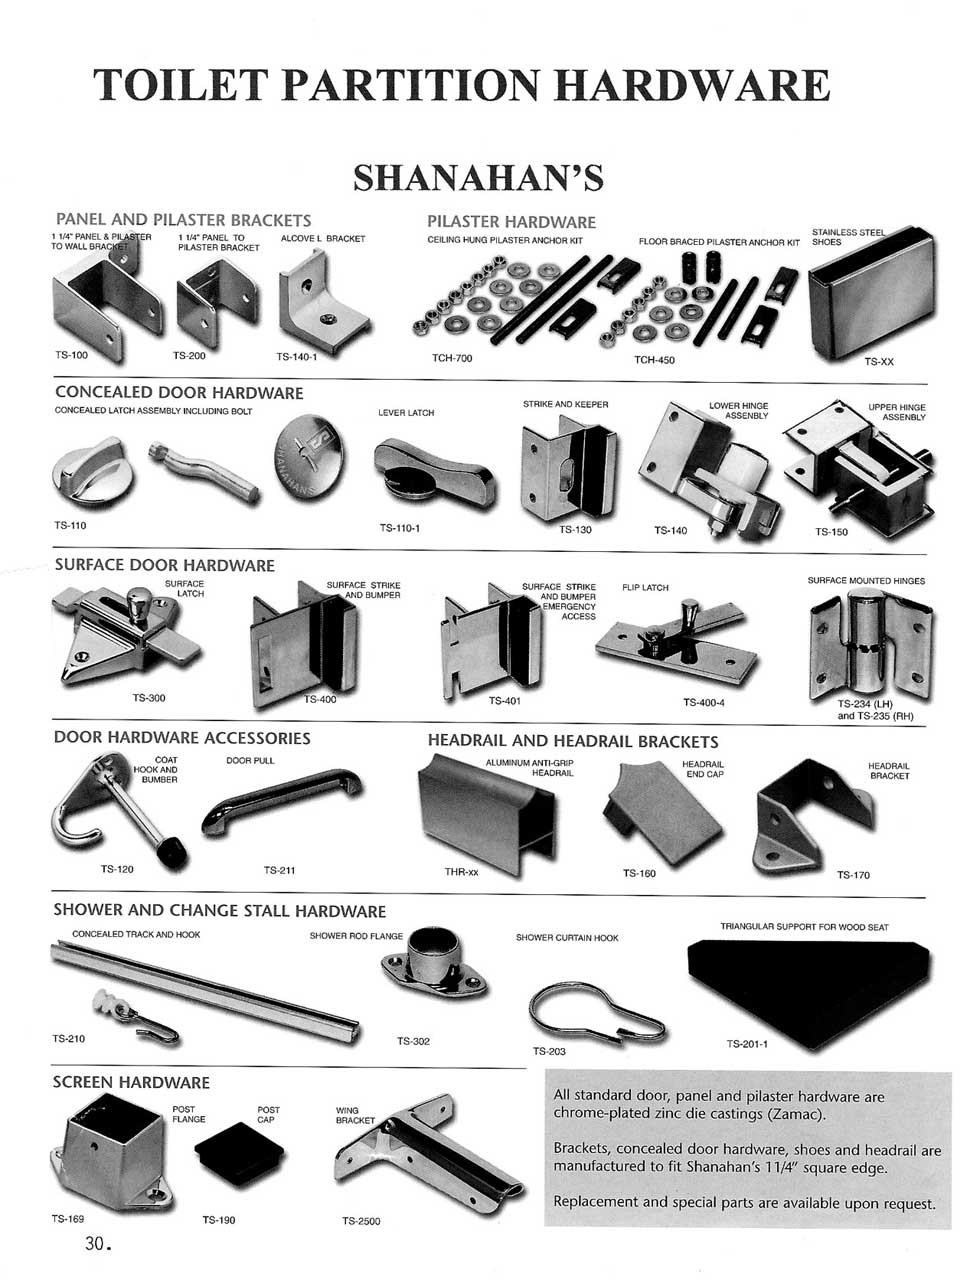 bathroom stall parts. Toilet Partition Hardware - Shanahan\u0027s Bathroom Stall Parts O